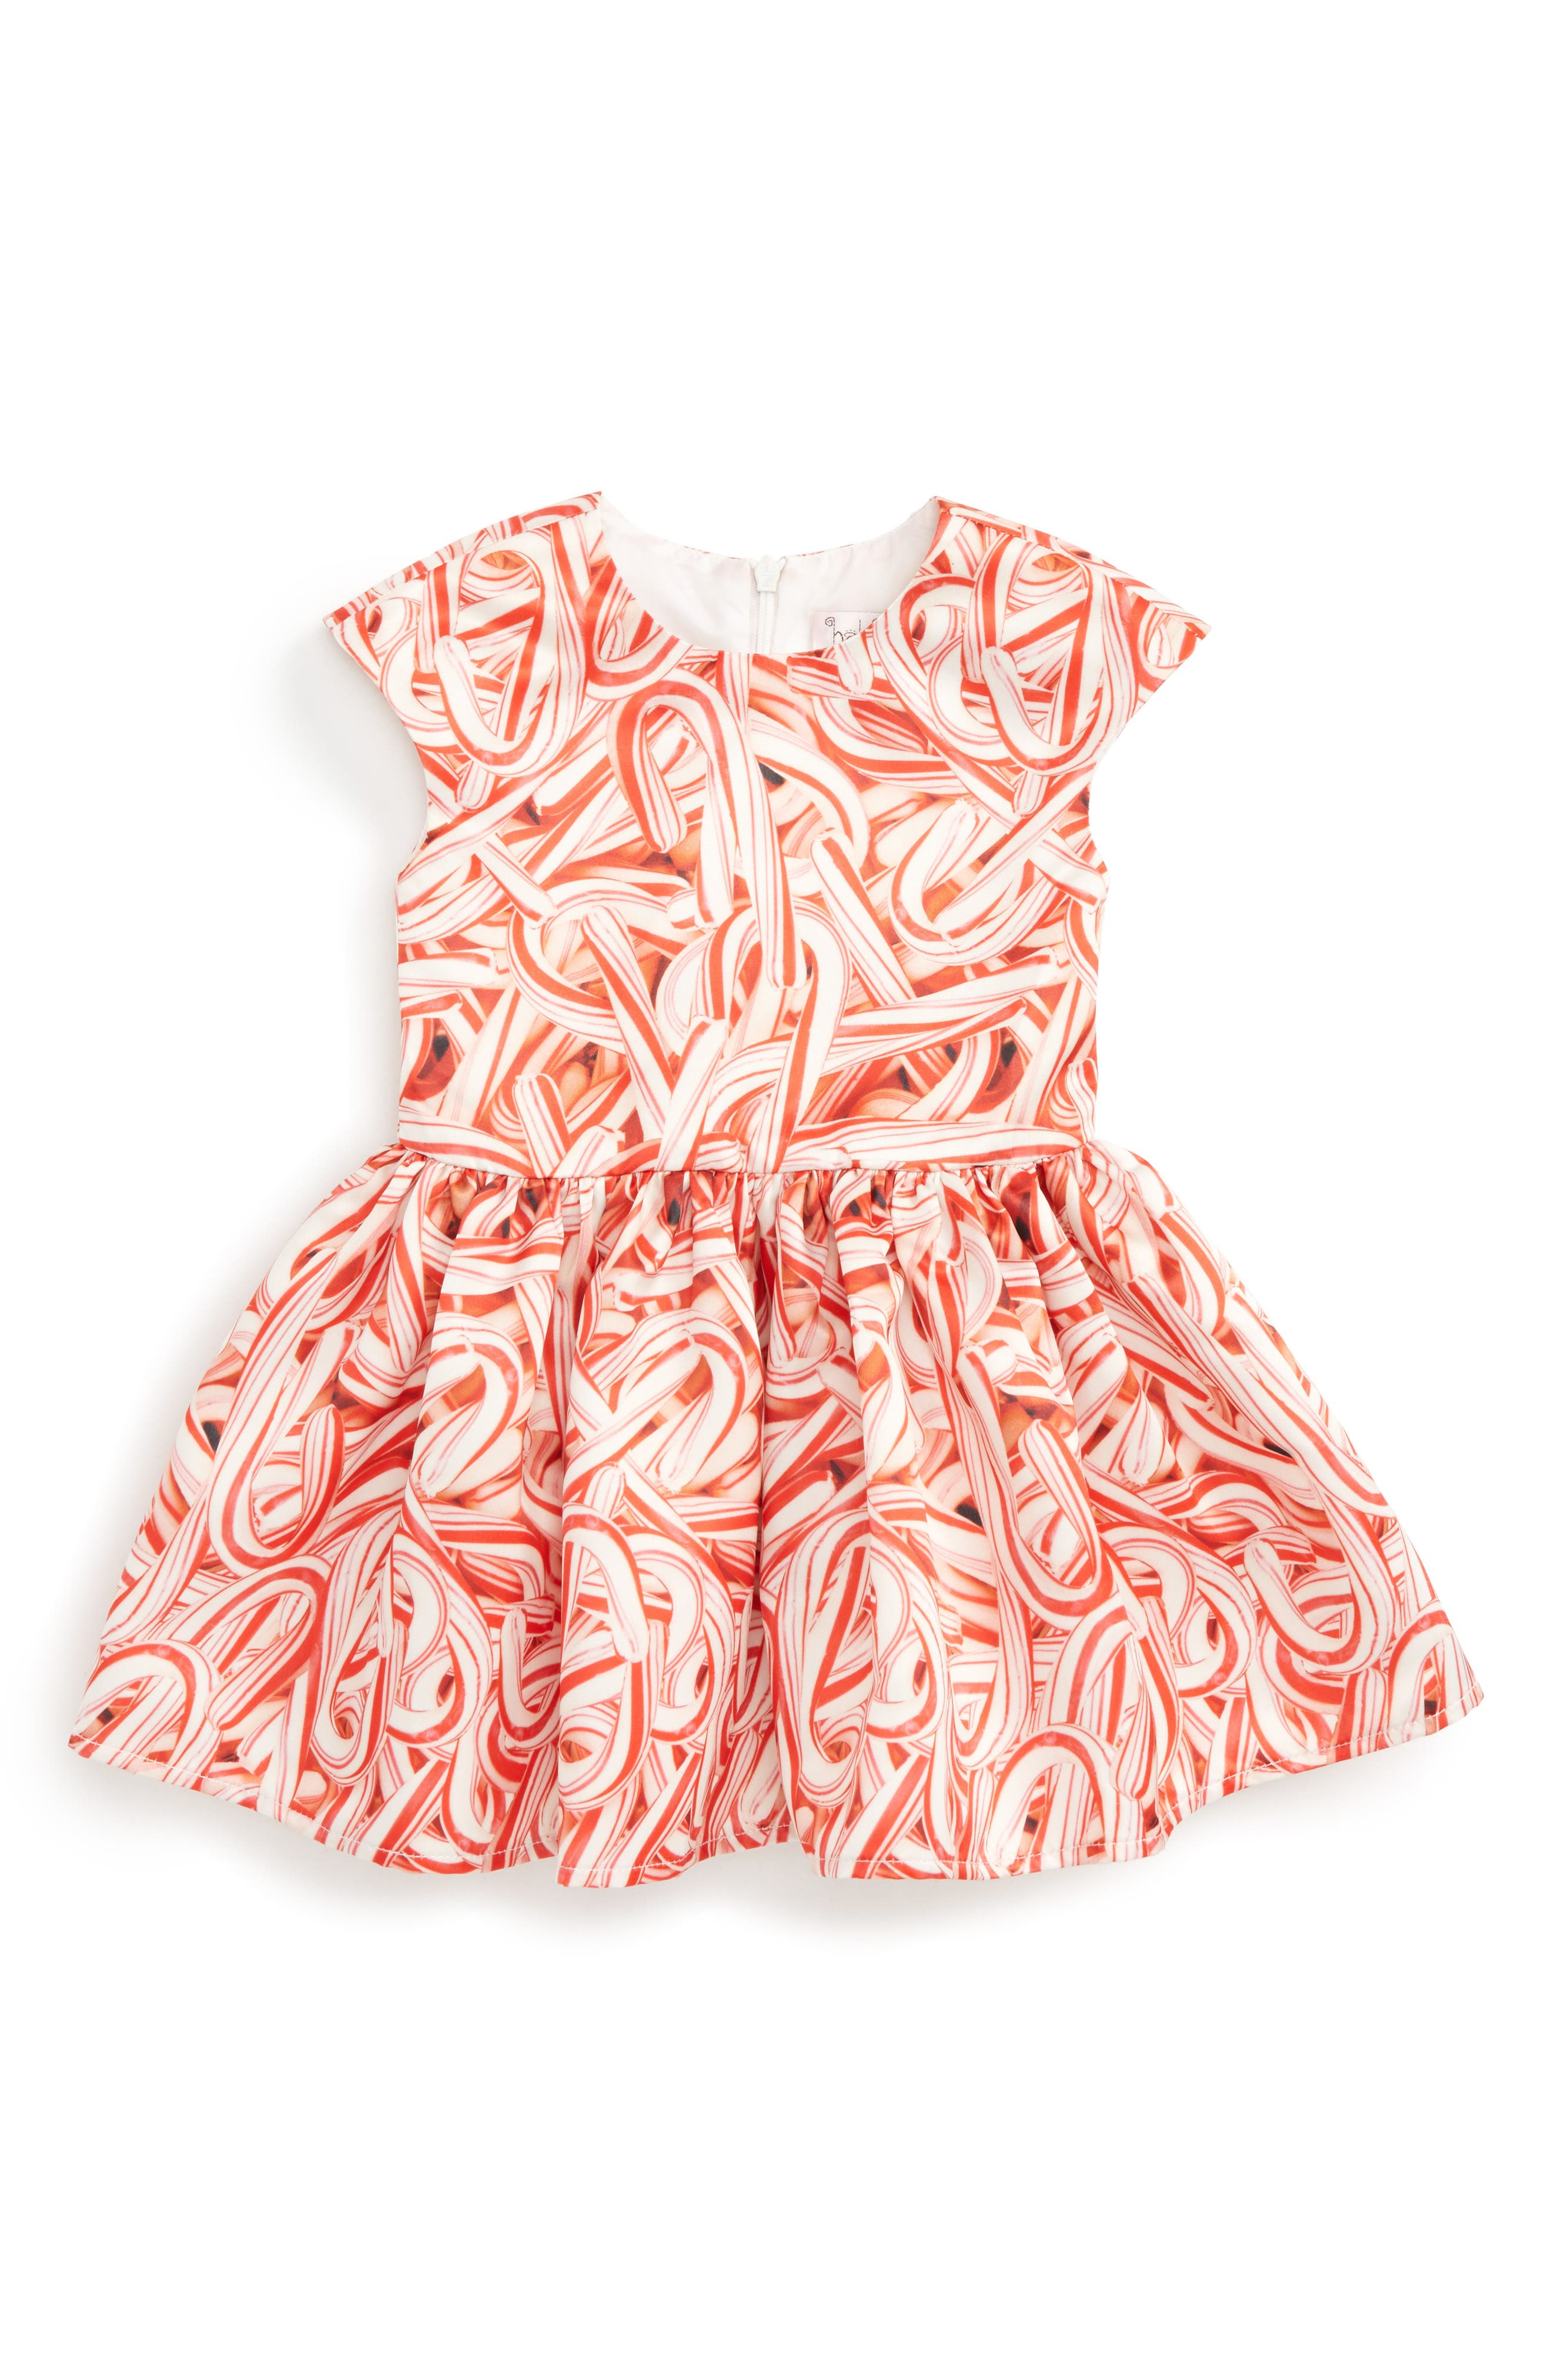 Candy Cane Print Dress,                             Main thumbnail 1, color,                             Red